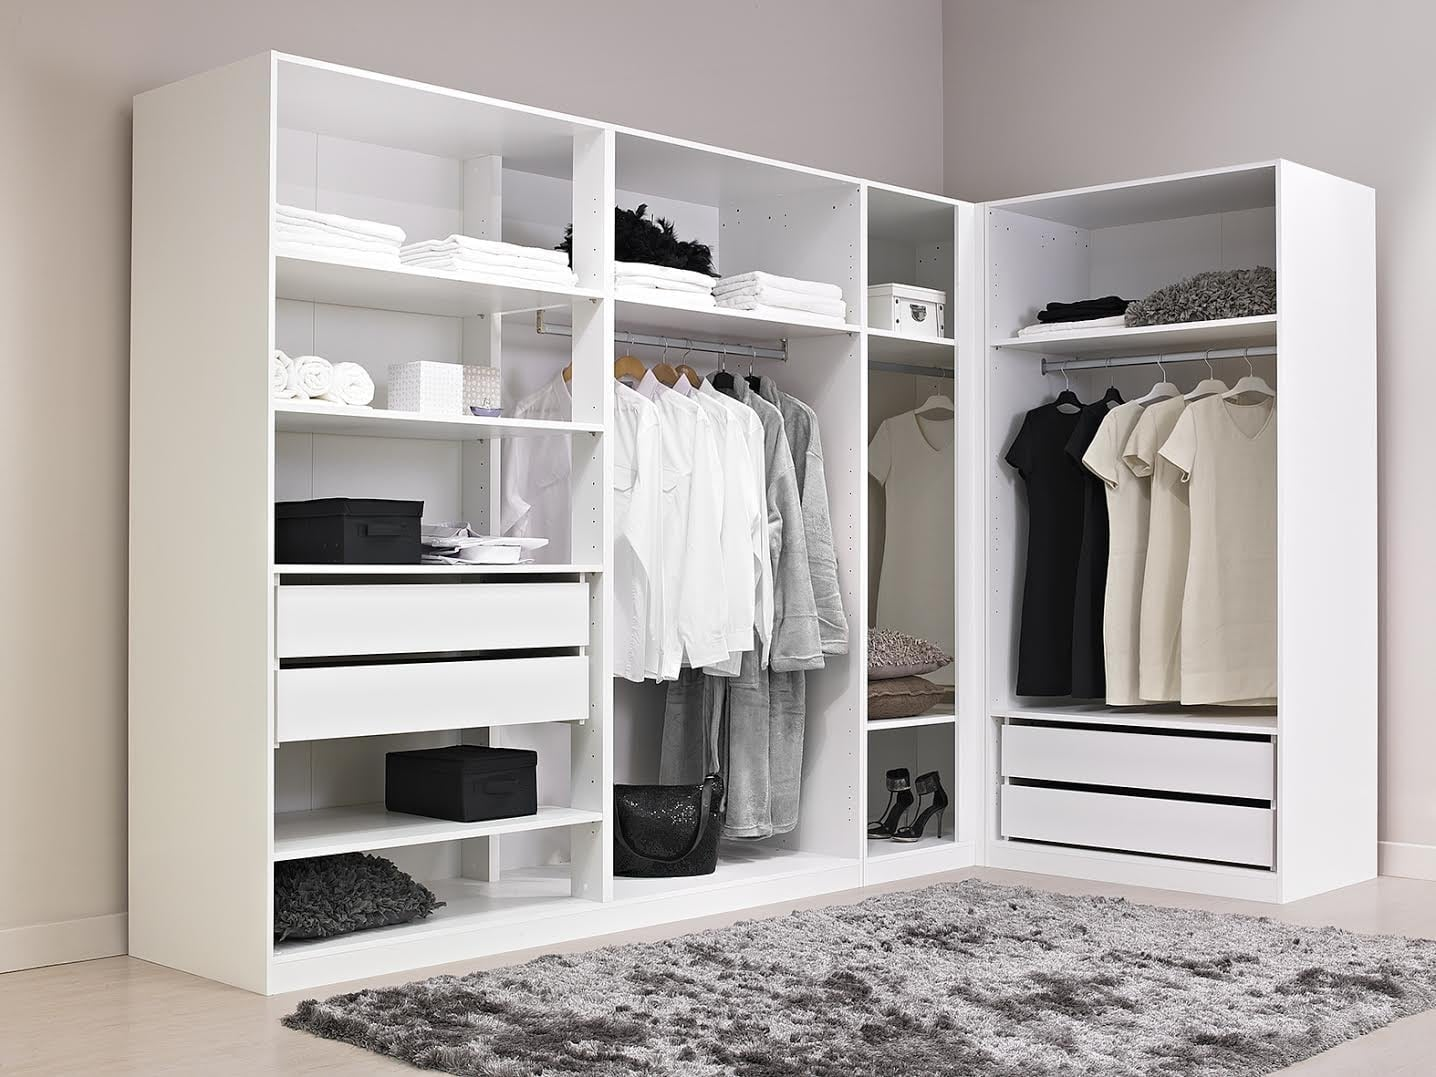 Comment ranger son dressing m thodes optimales de rangement for Dressing chambre pas cher